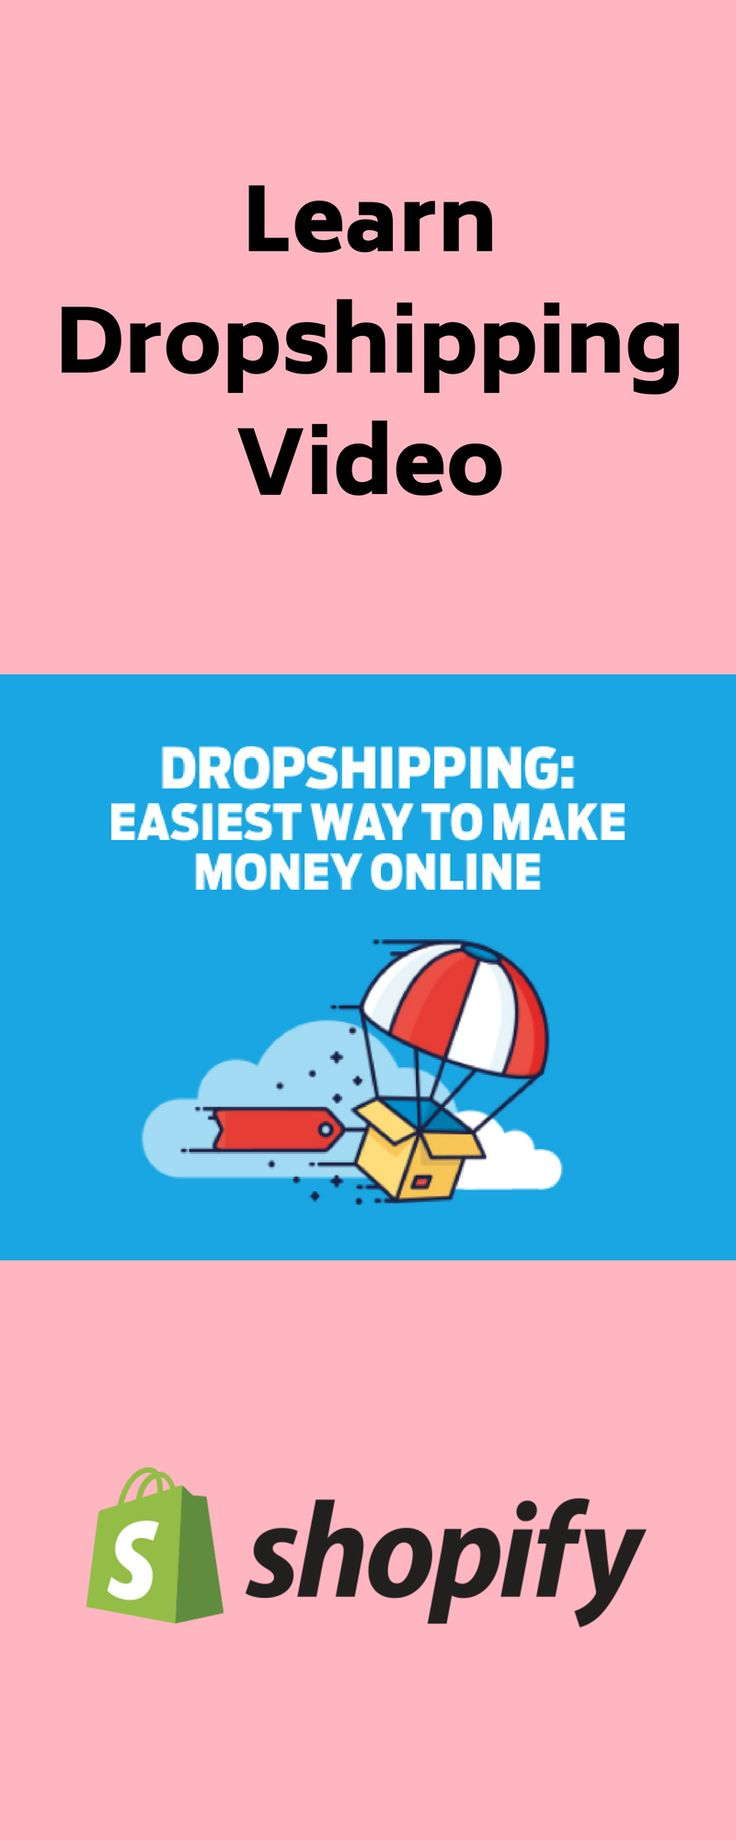 dropshipping shopify Learn how to dropship. What is